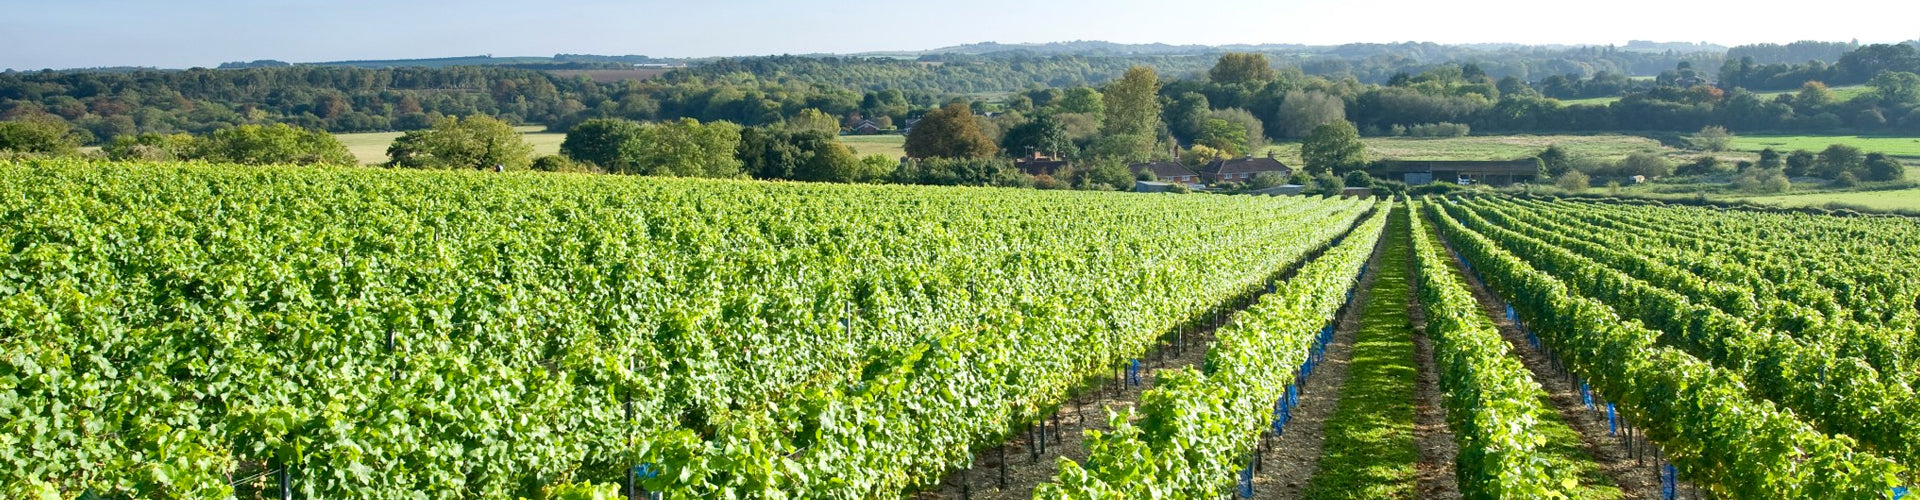 Cottonworth Vineyards in Hampshire, England